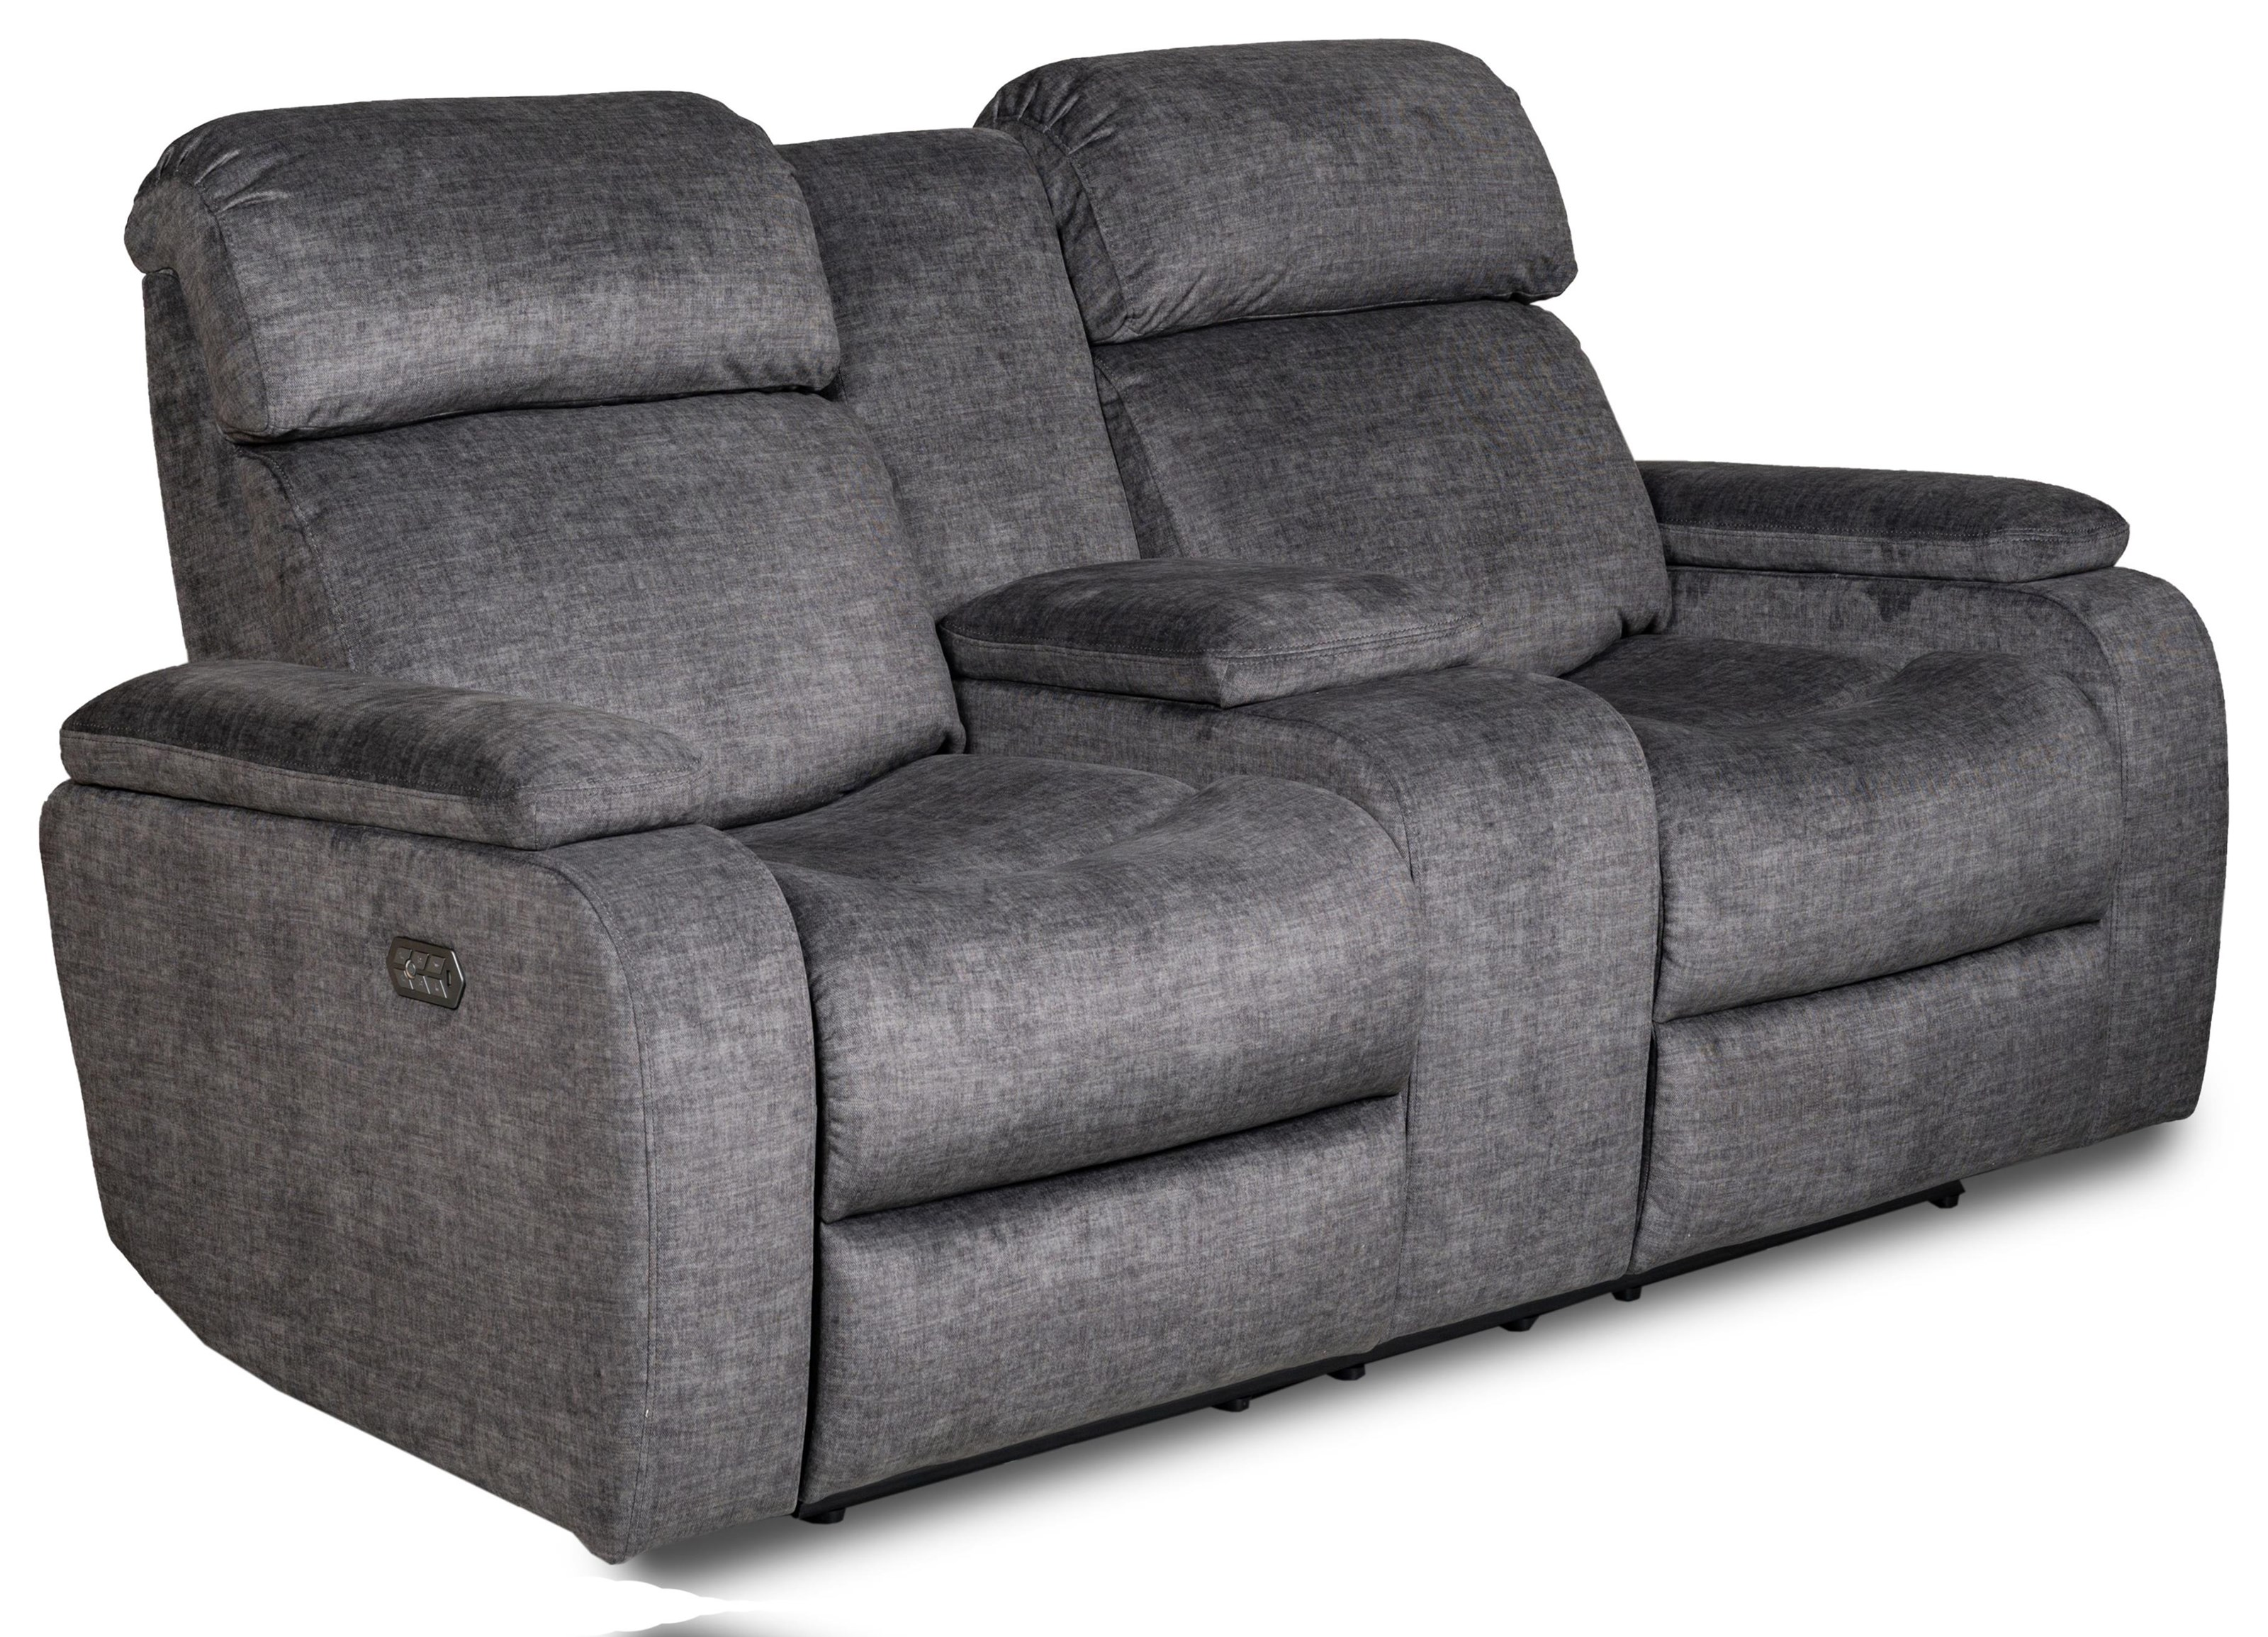 Apex Triple Power Reclining Loveseat w/ Console by Zeal at Walker's Furniture